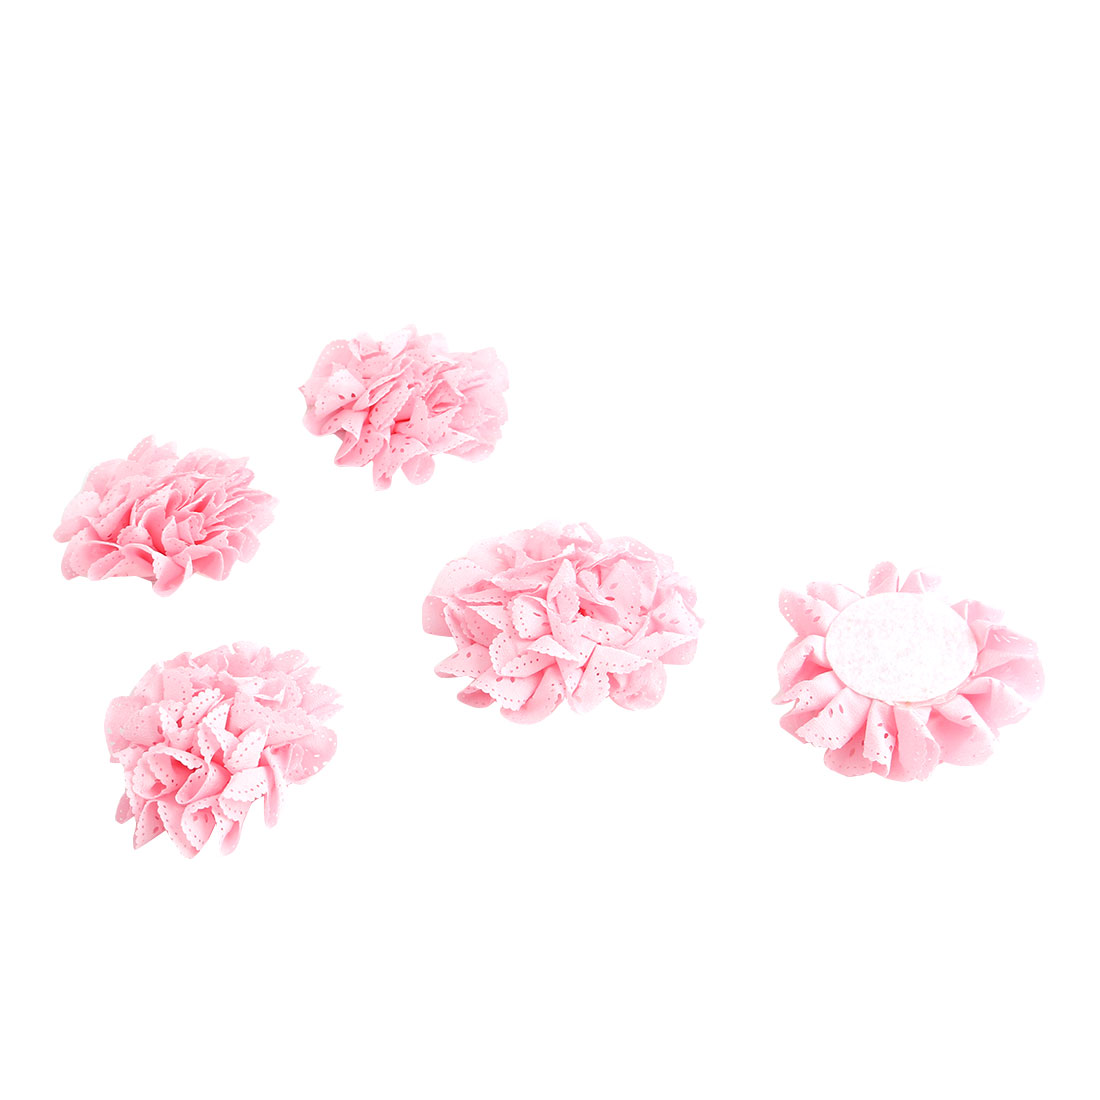 Home Living Room Bedroom Fabric Table Wall Decoration Handcraft DIY Flower 5 Pcs